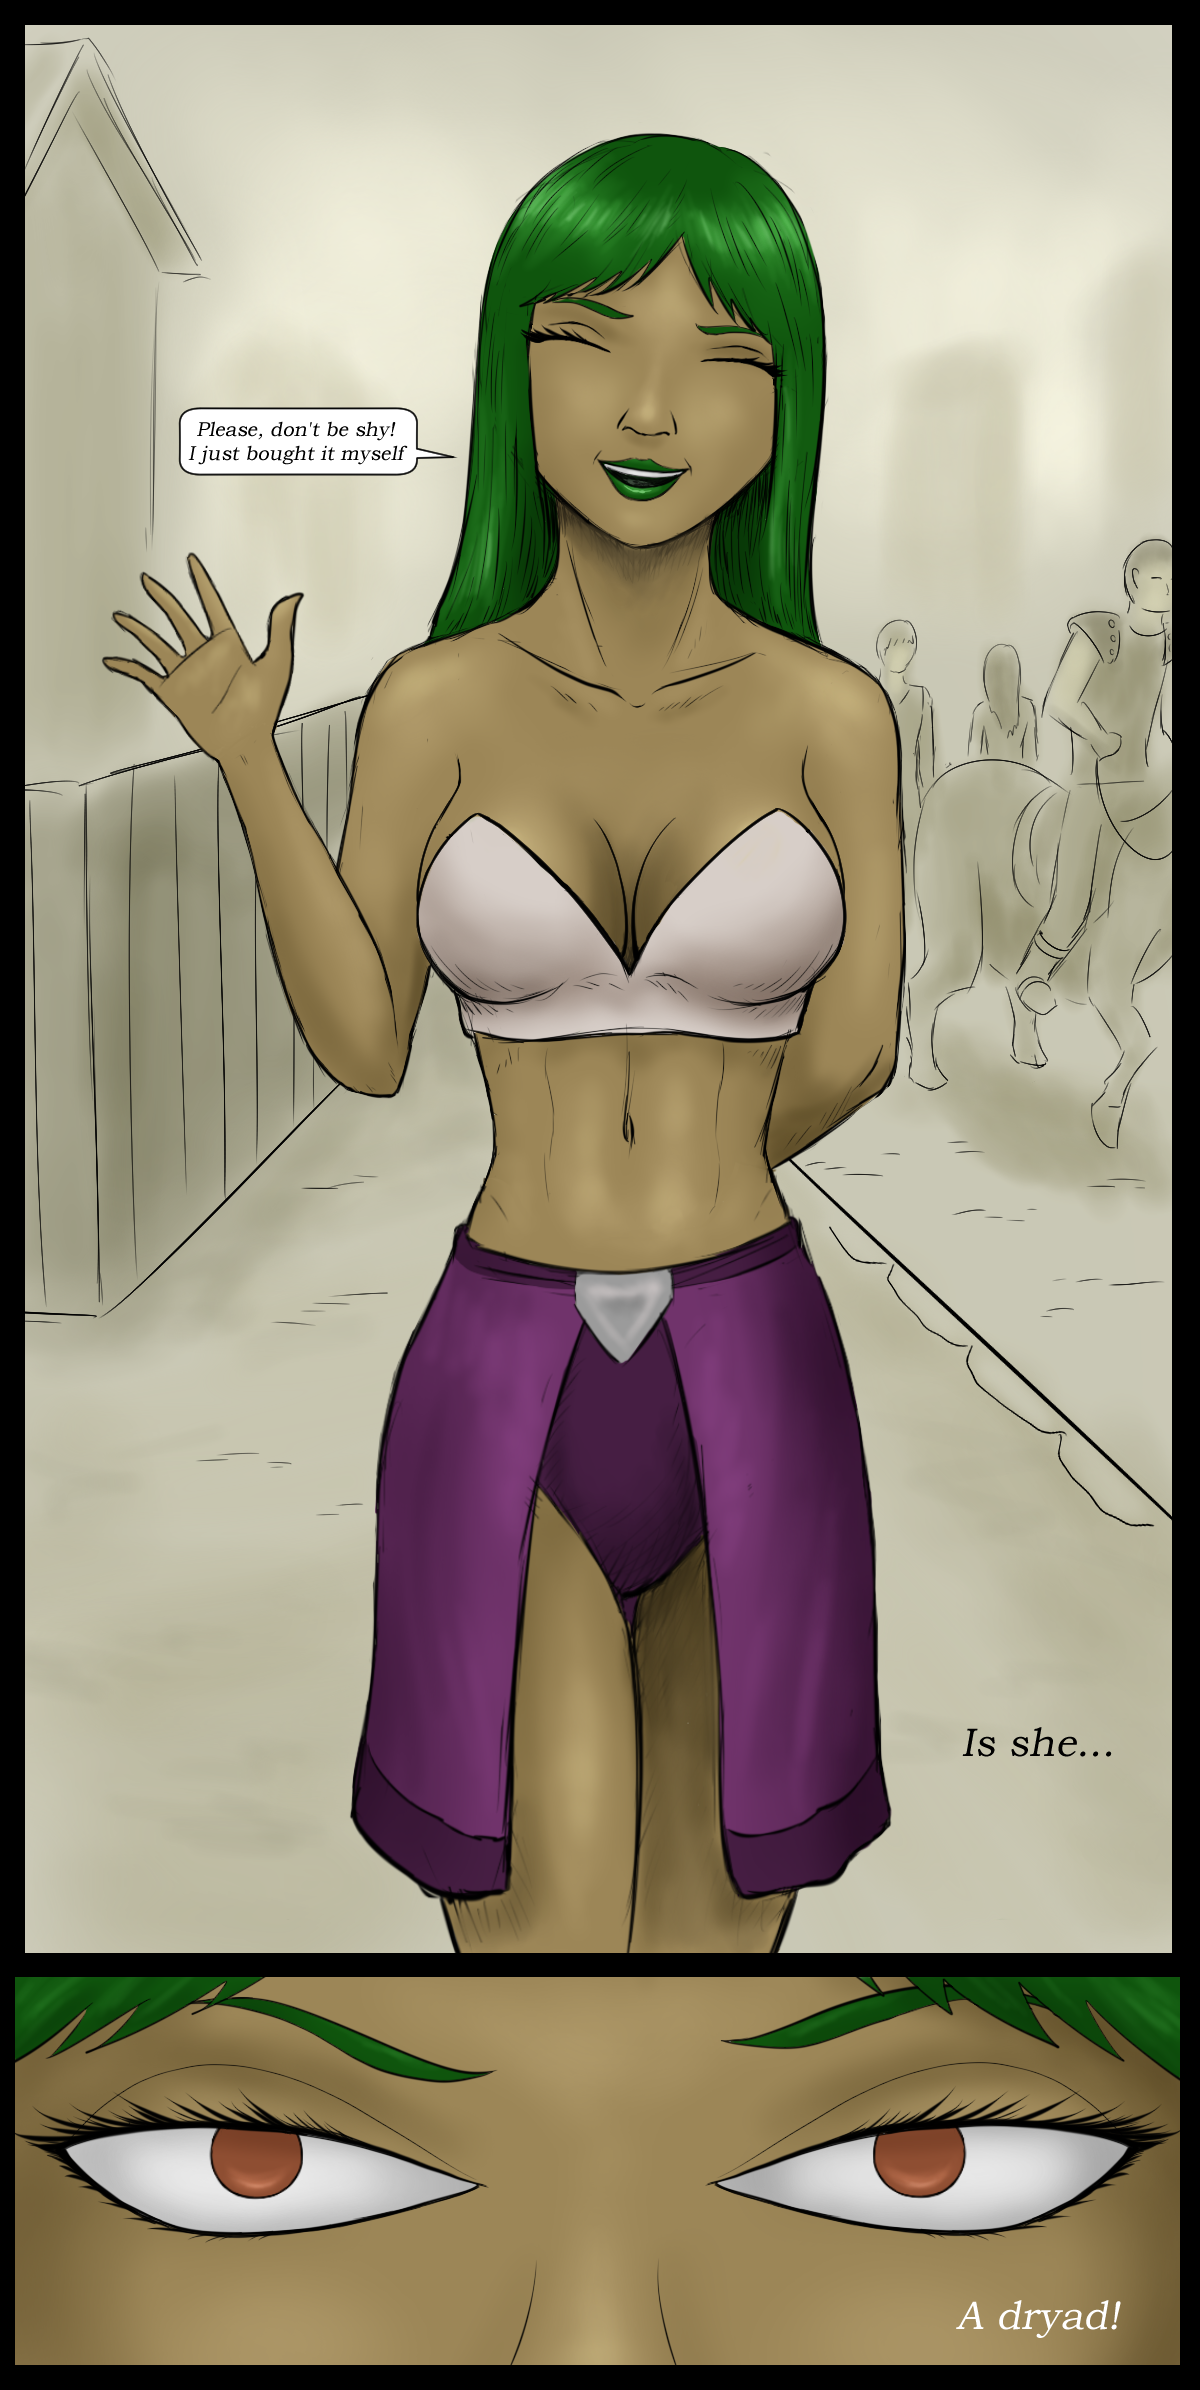 Page 7 - The green-haired dryad